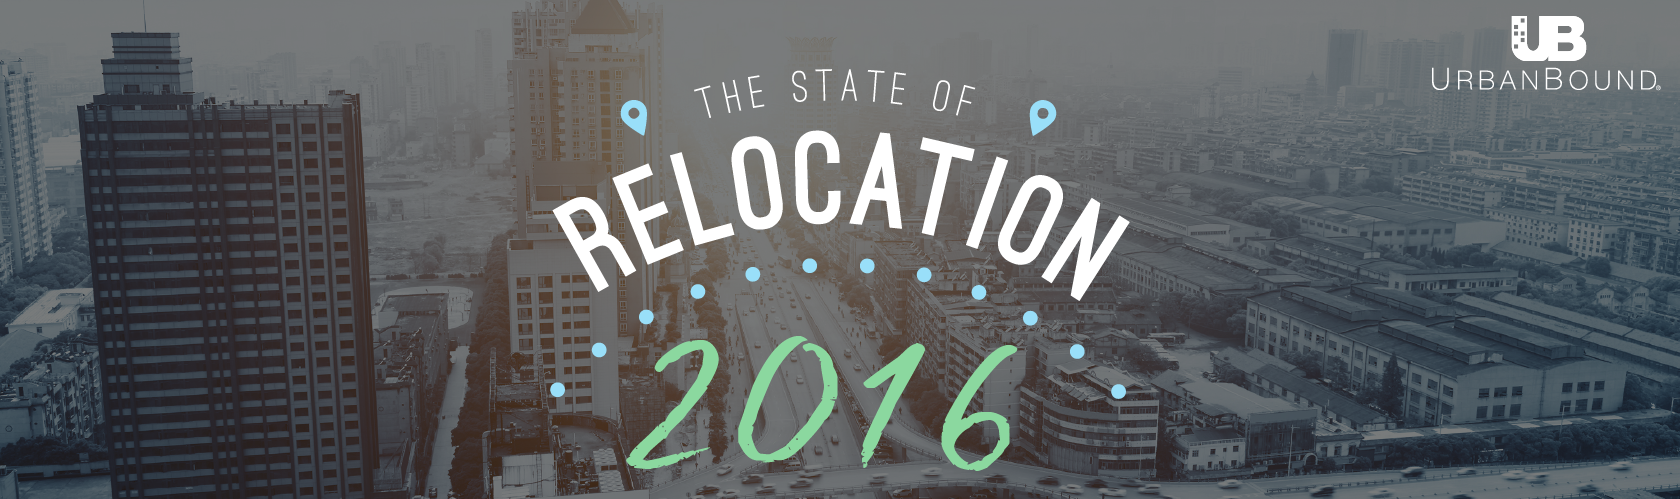 state of relocation 2016